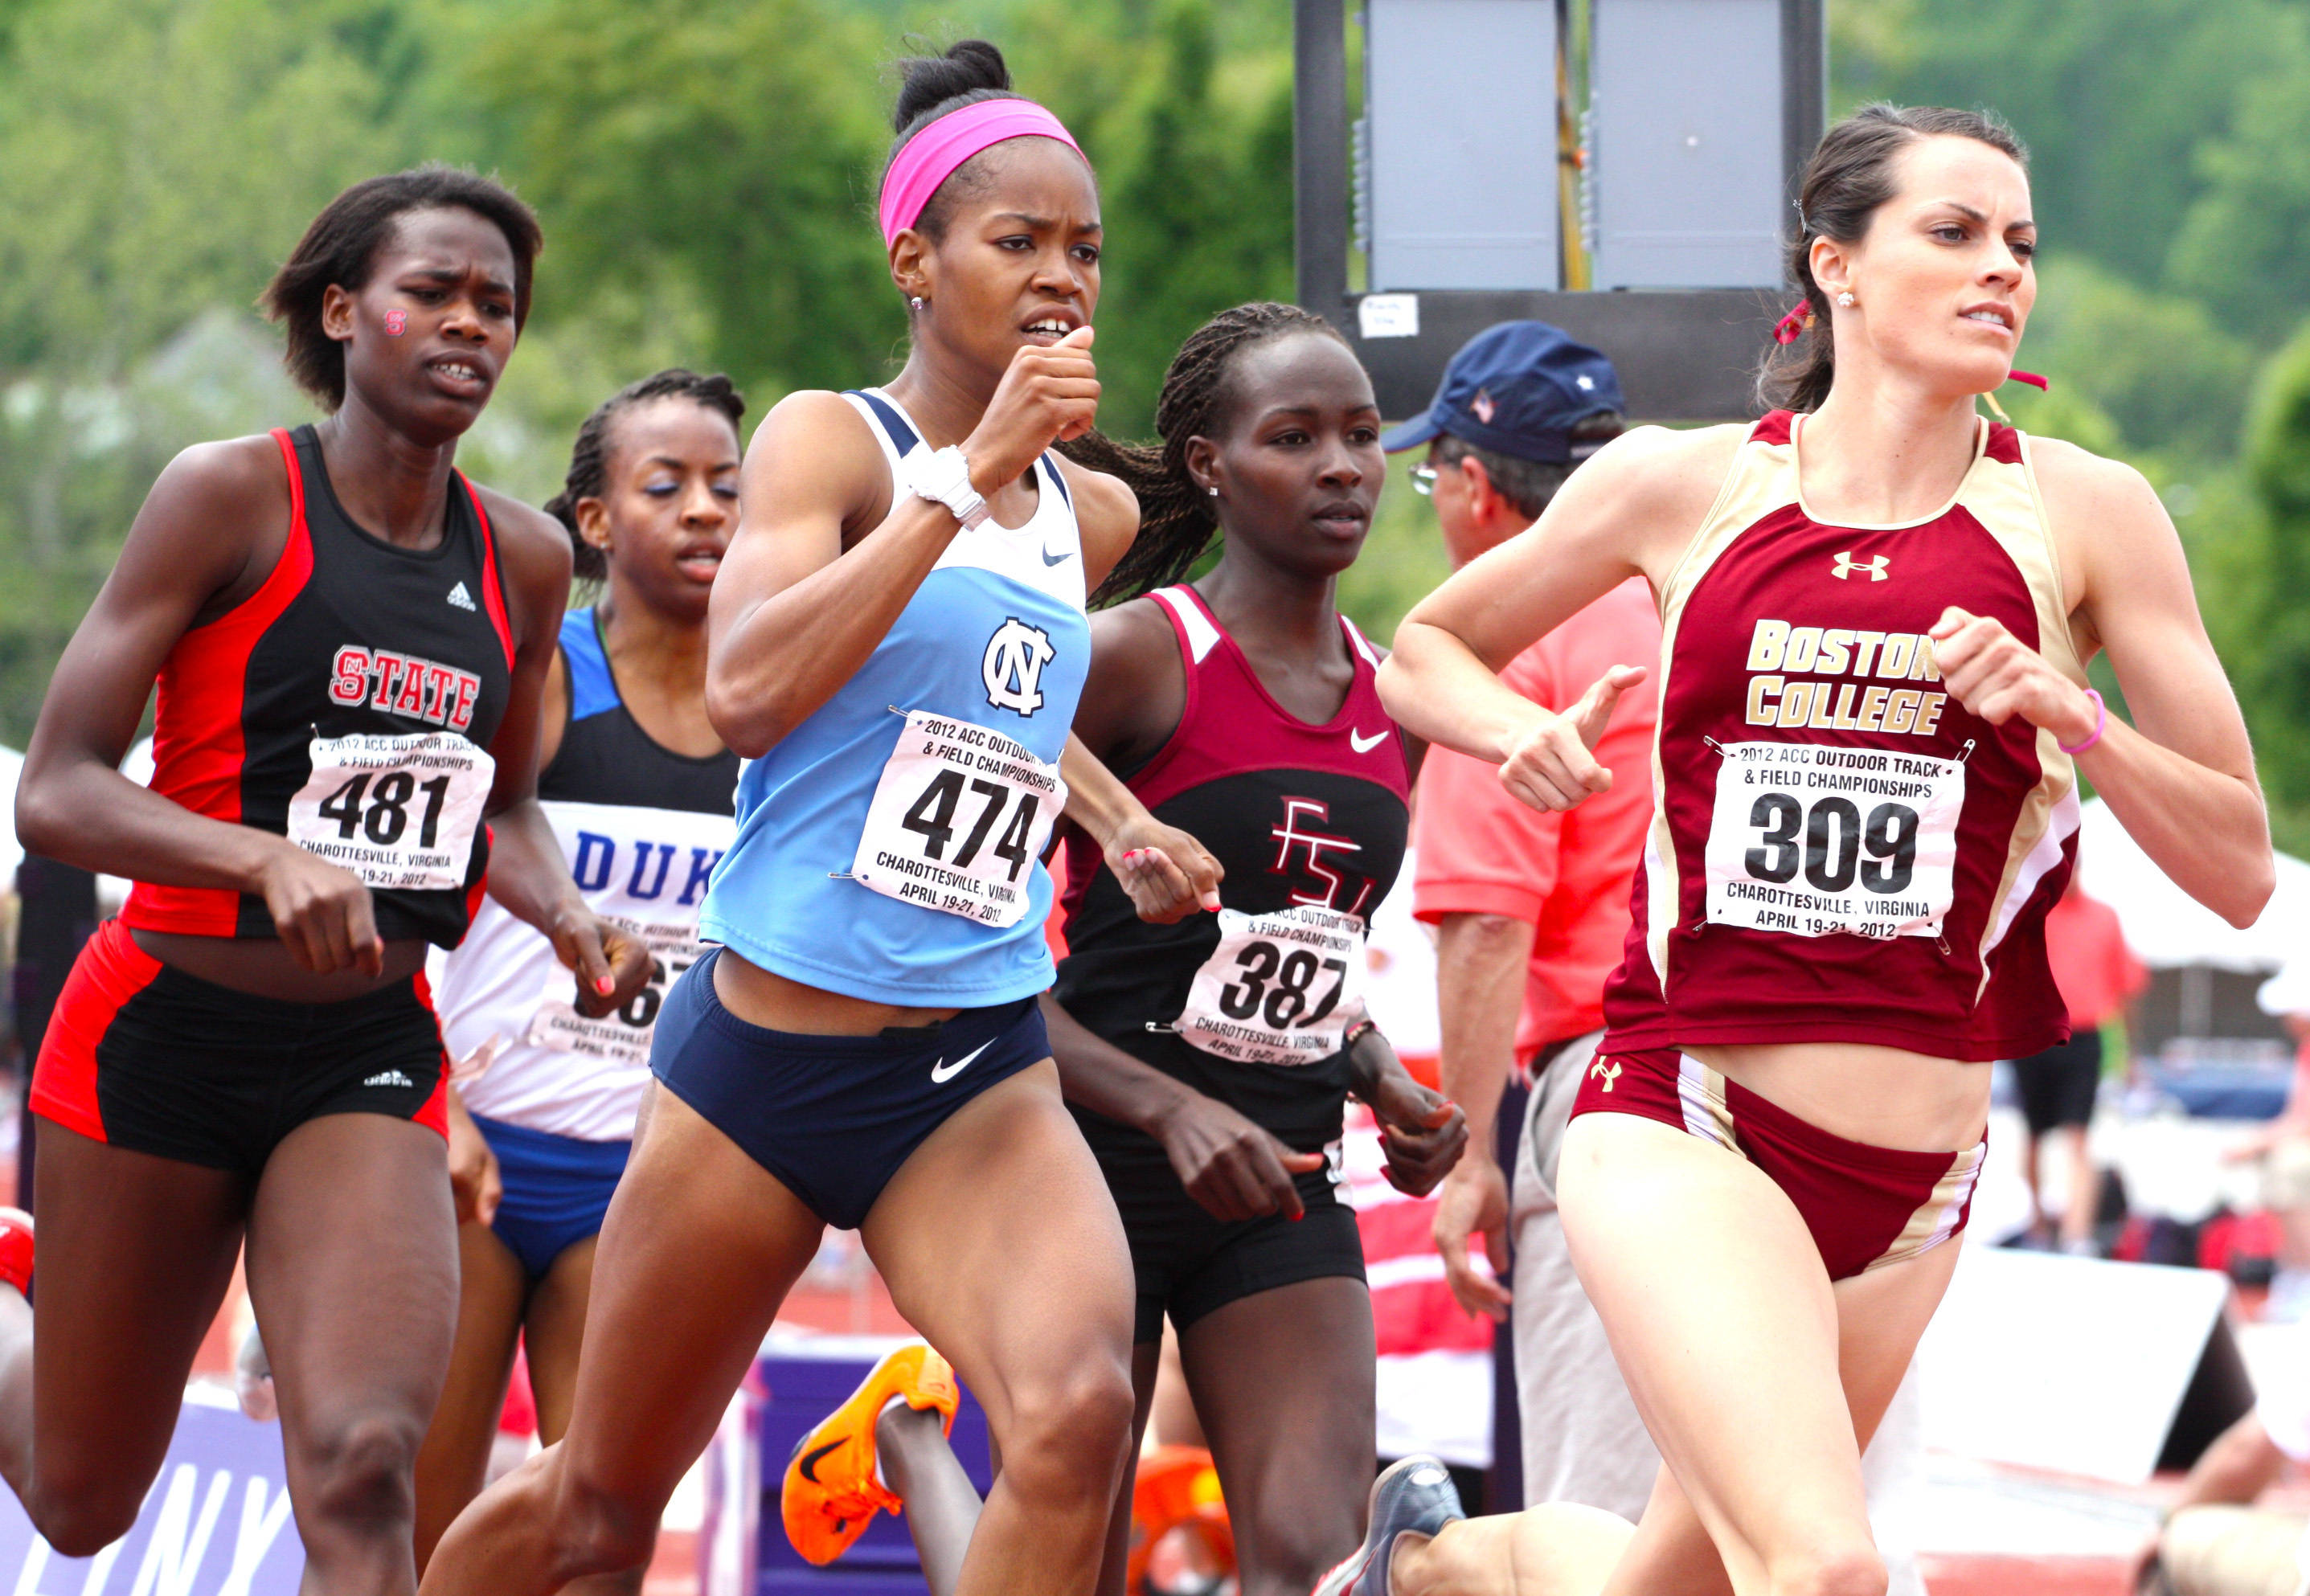 FSU's Violah Lagat is nestled in the middle of the pack during the 800m finals, where she claimed the bronze medal in a new PR.